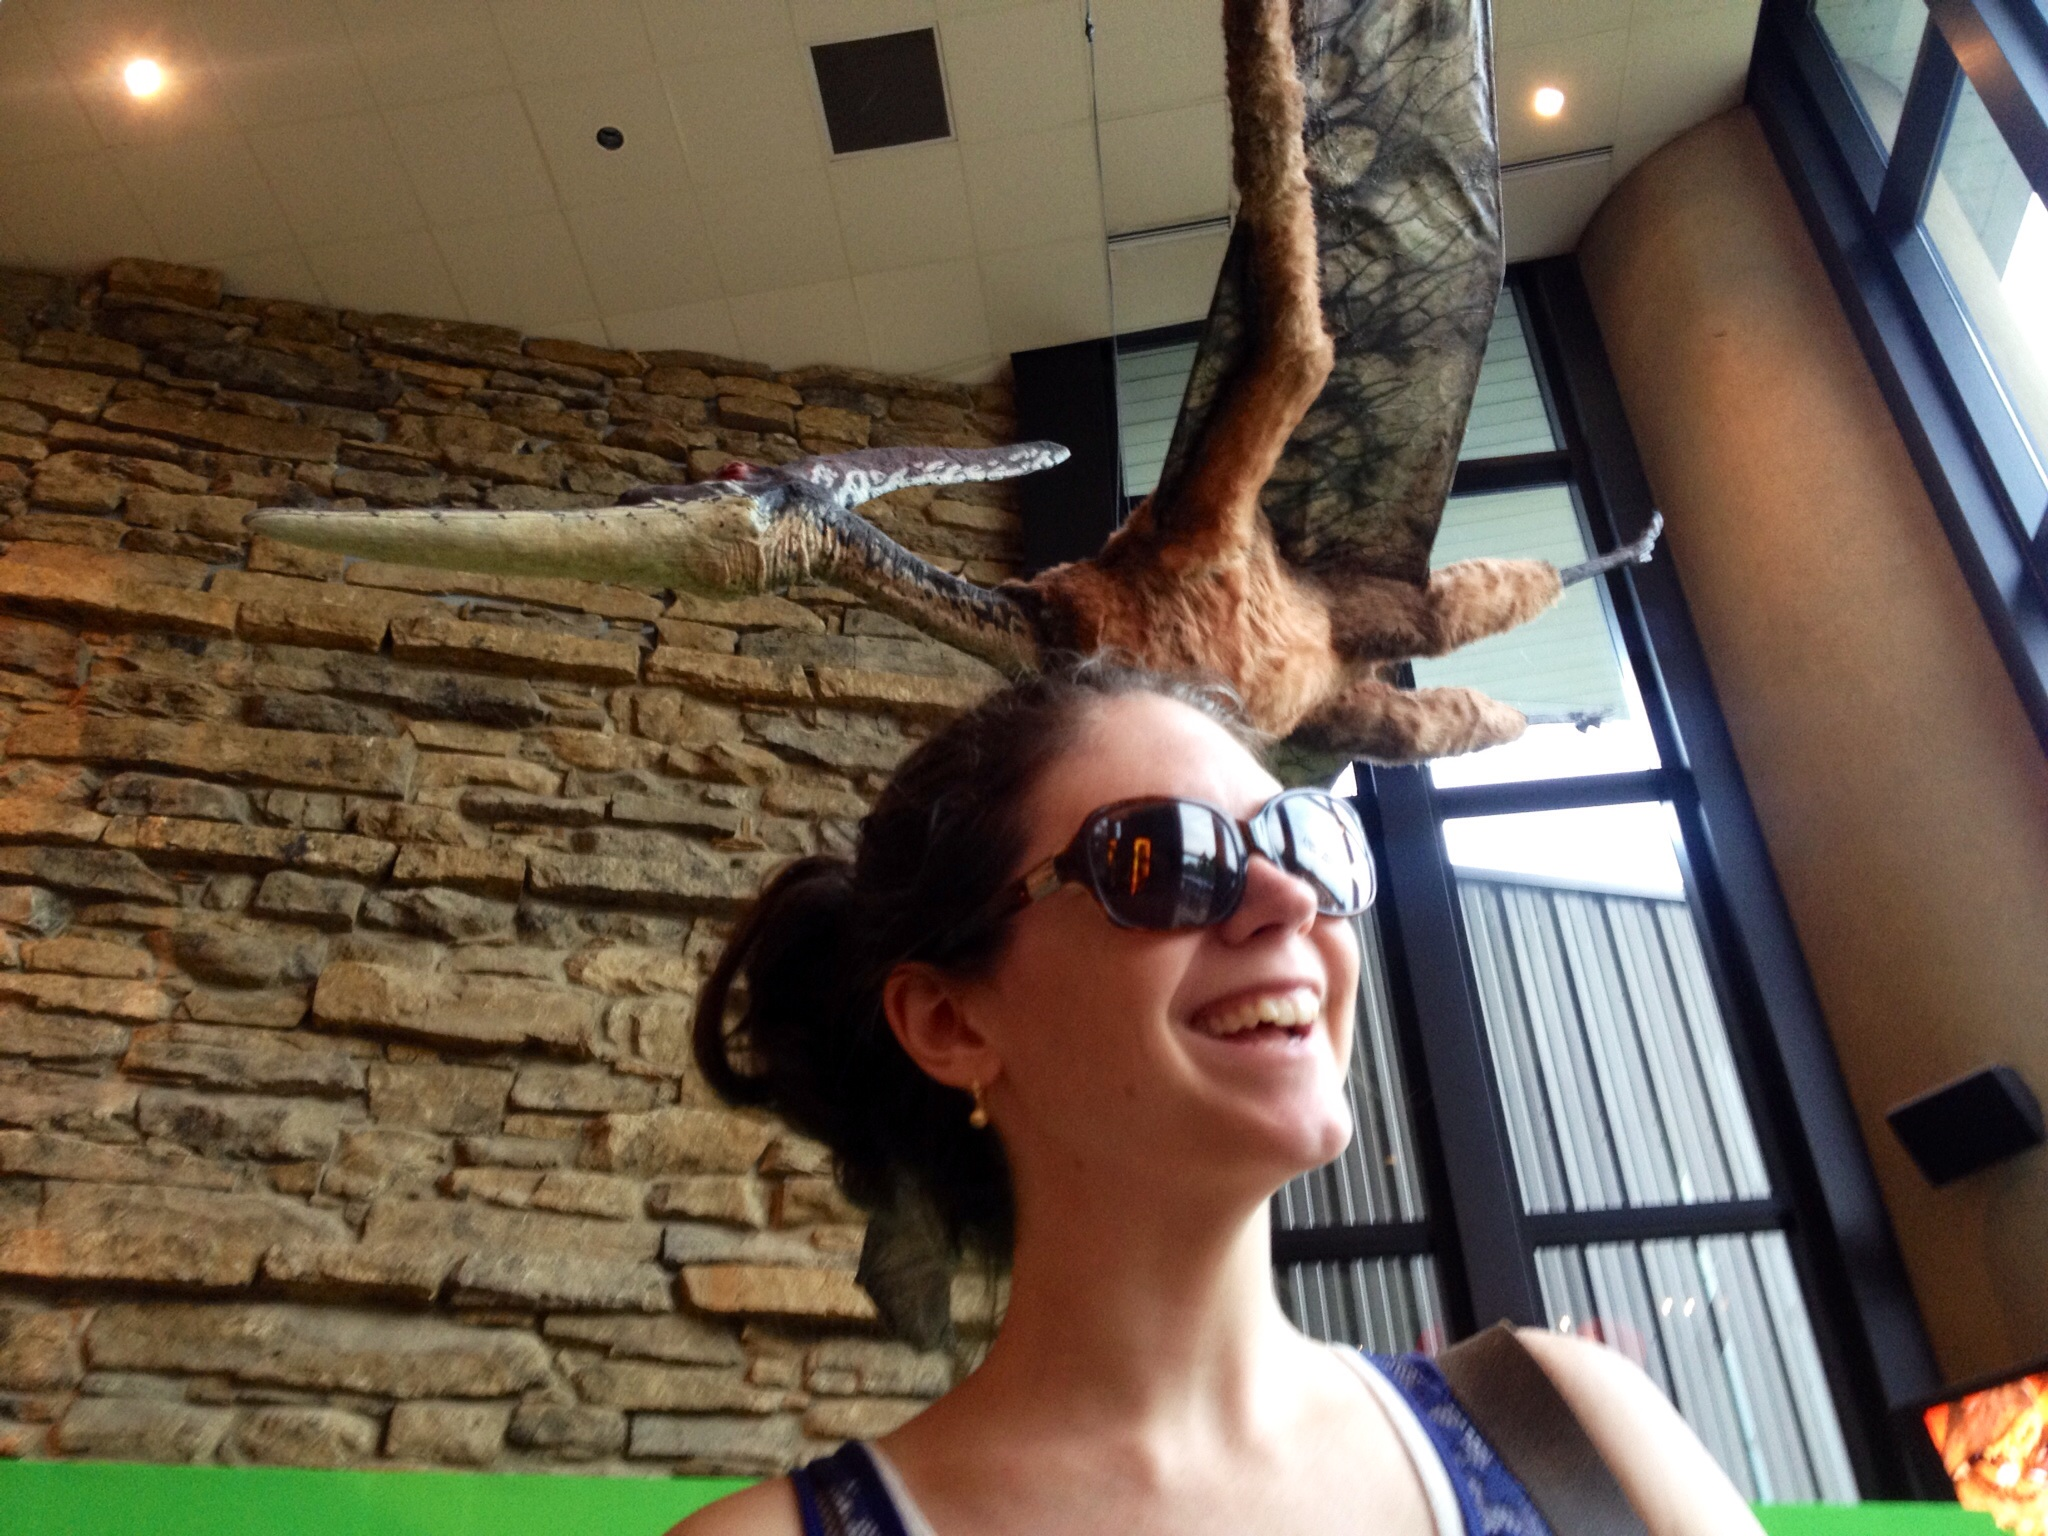 Kristi joyfully strolling along, unaware that a pterodactyl is eyeing her for a snack.